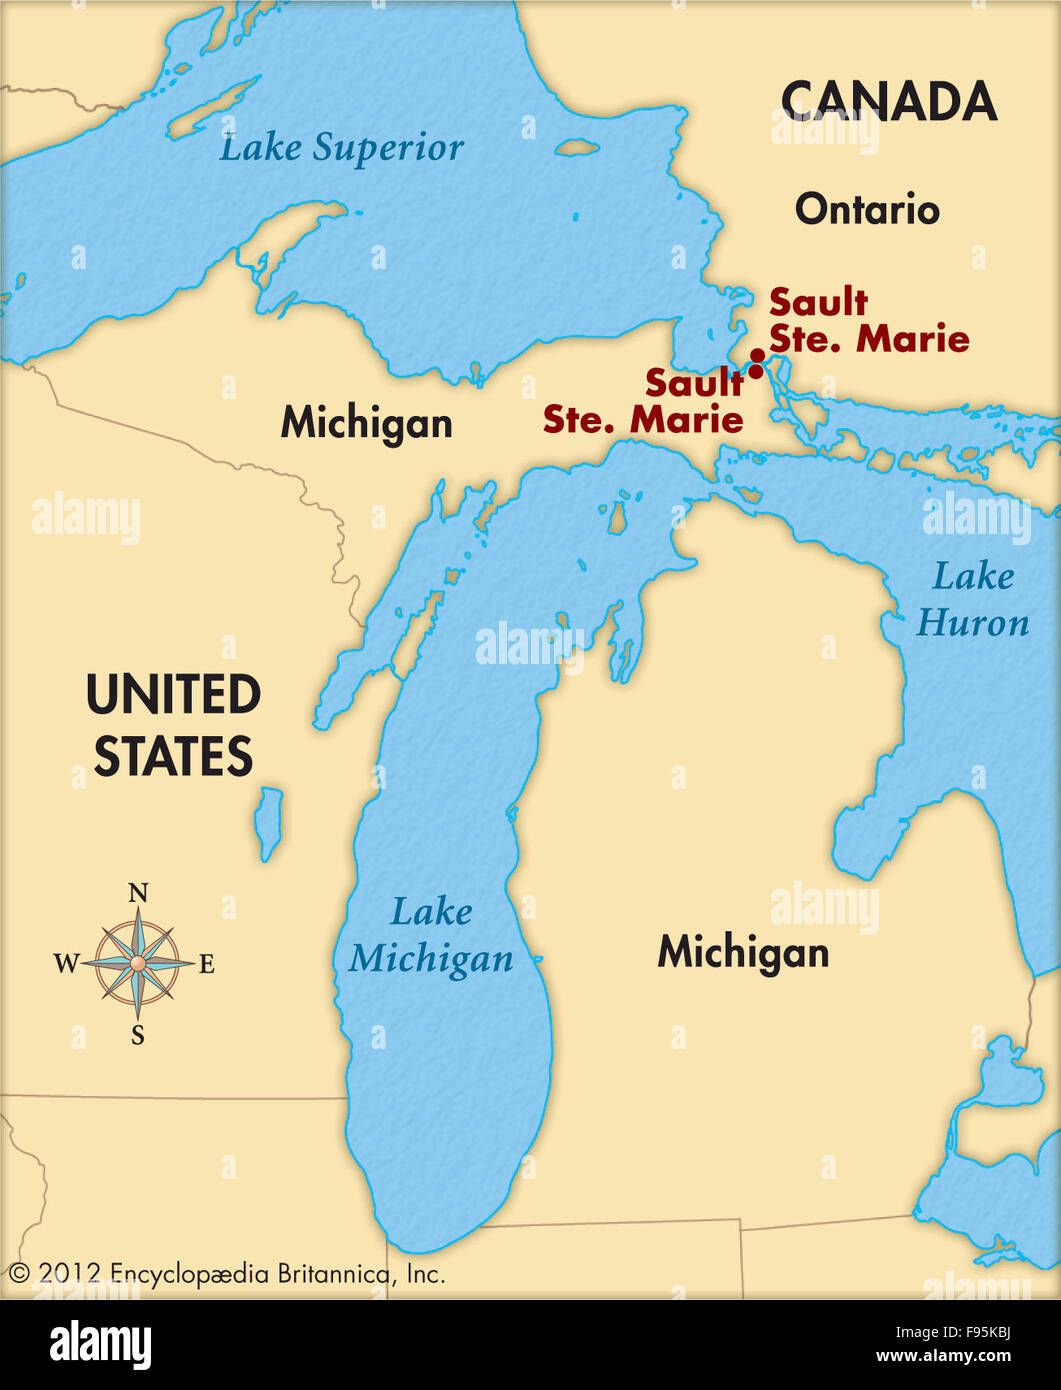 Sioux St Marie Canada Map Sault Sainte Marie Maps Cartography Geography High Resolution